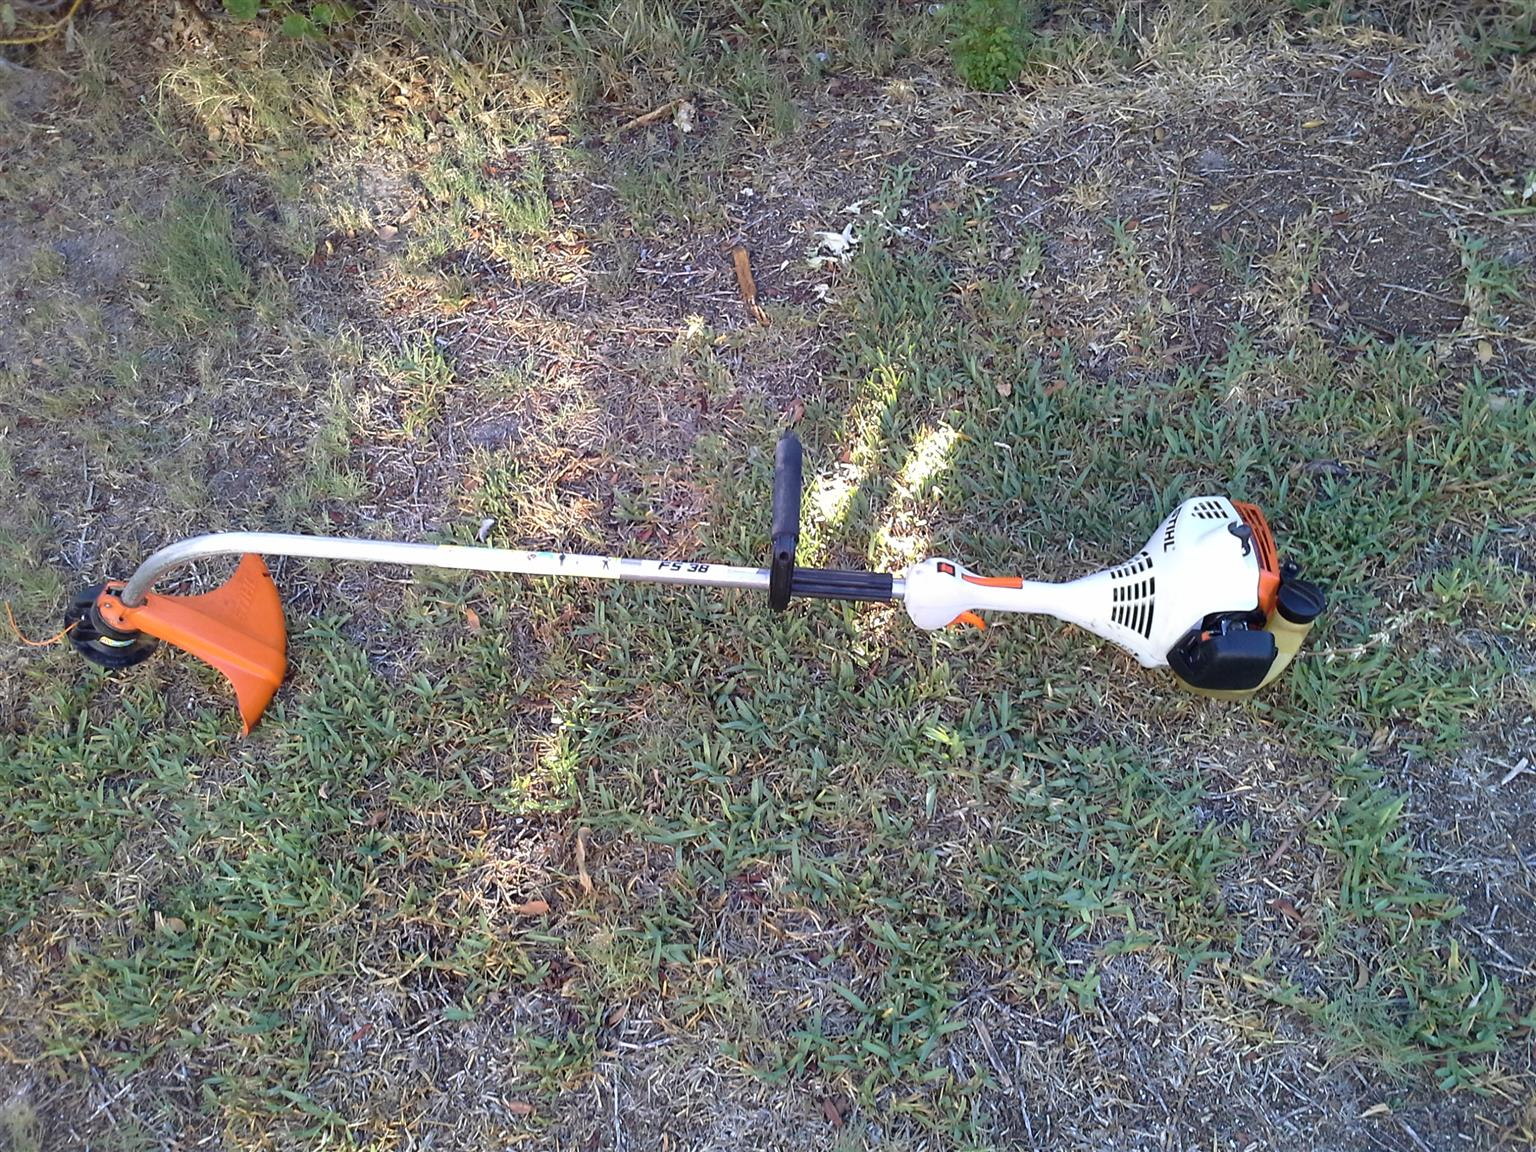 Stihl FS38 Petrol line trimmer in excellent condition